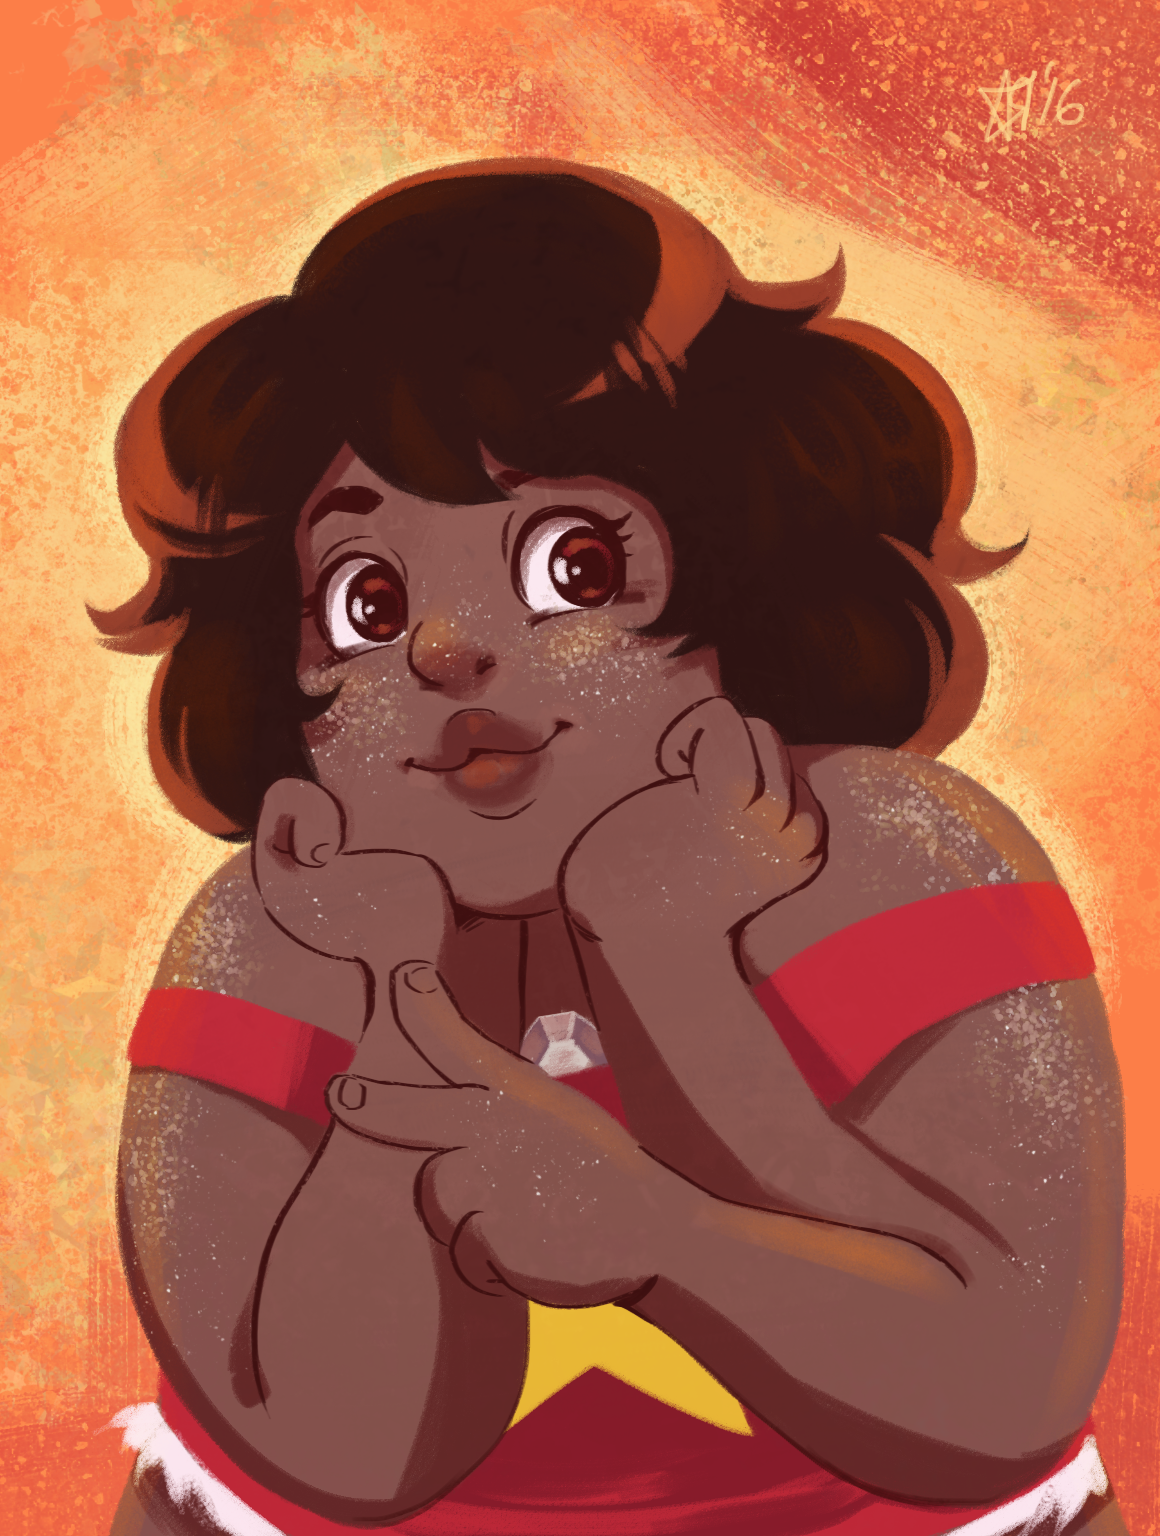 smokey quartz is adorable